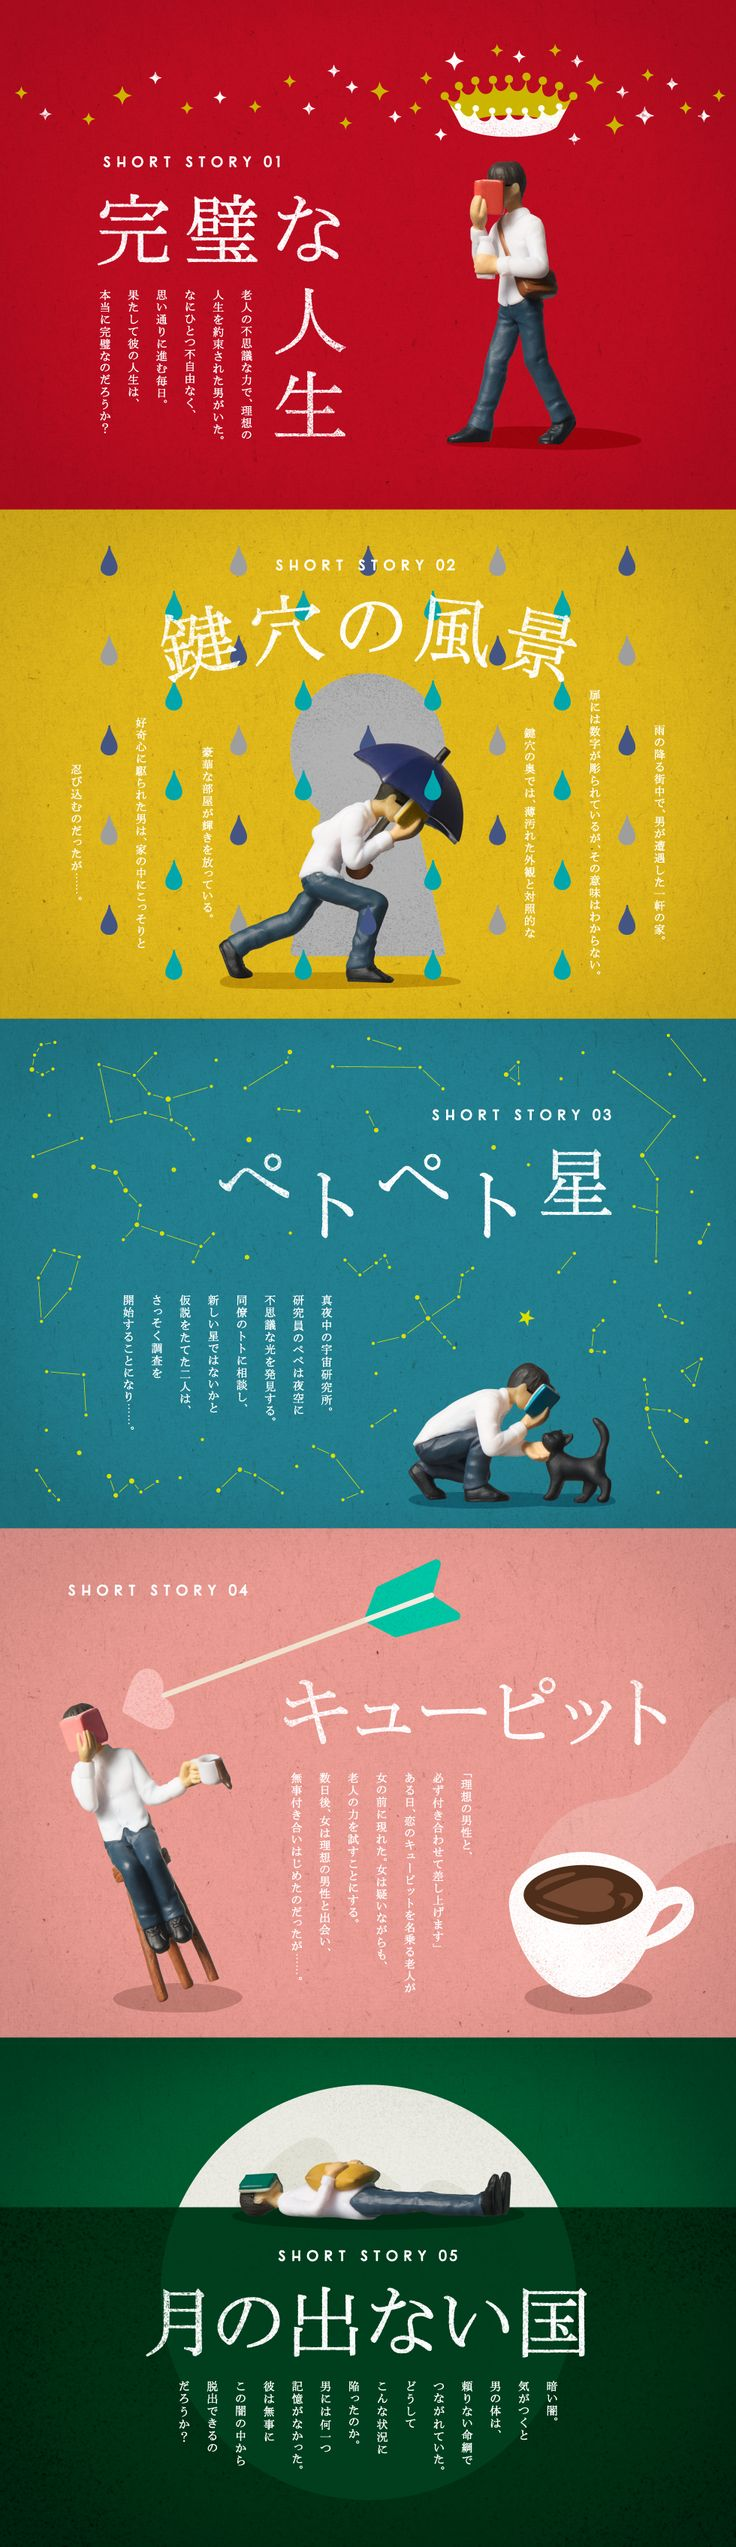 Could be a nice site design if it isnt one - 熊貓之穴奇妙新作!書不離手的【文學青年山本君】 | 玩具人Toy People News